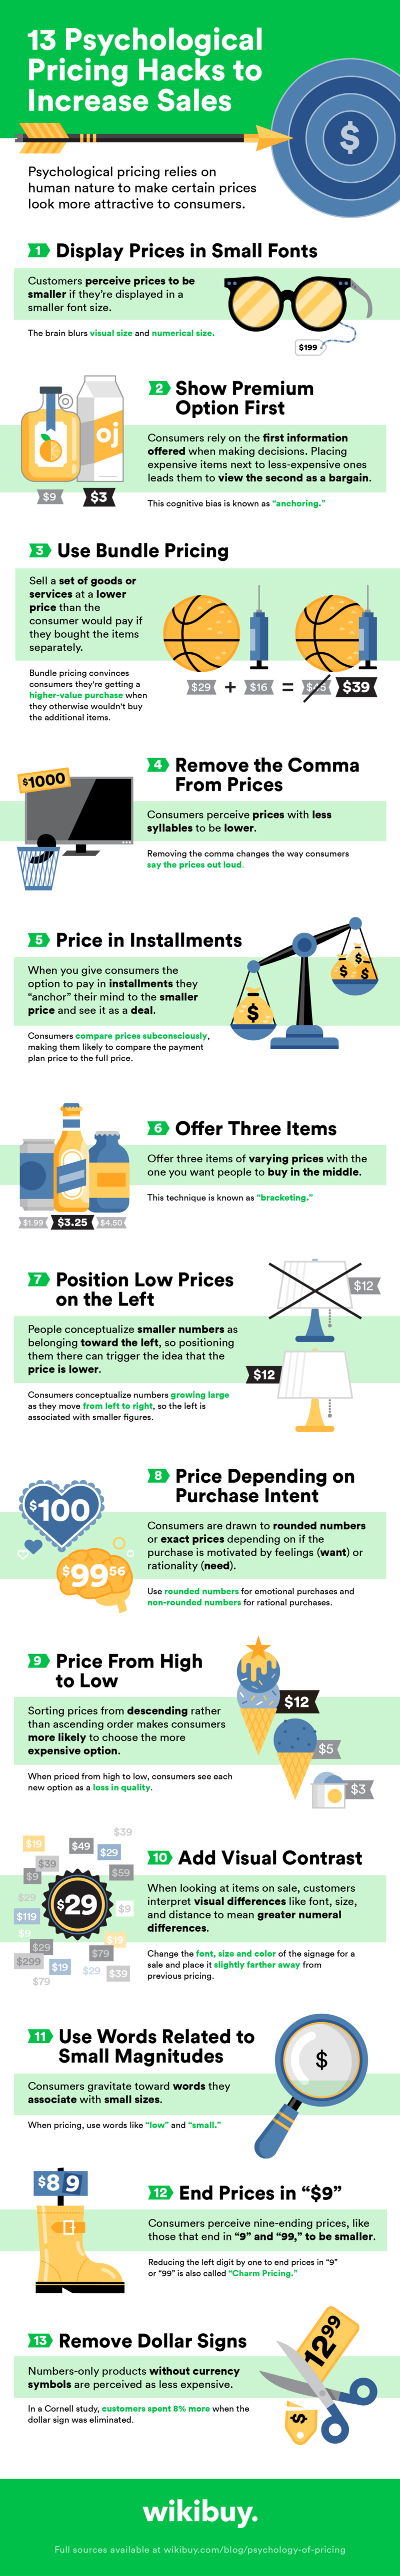 13 Psychological Pricing Tricks to Boost Sales [Infographic]